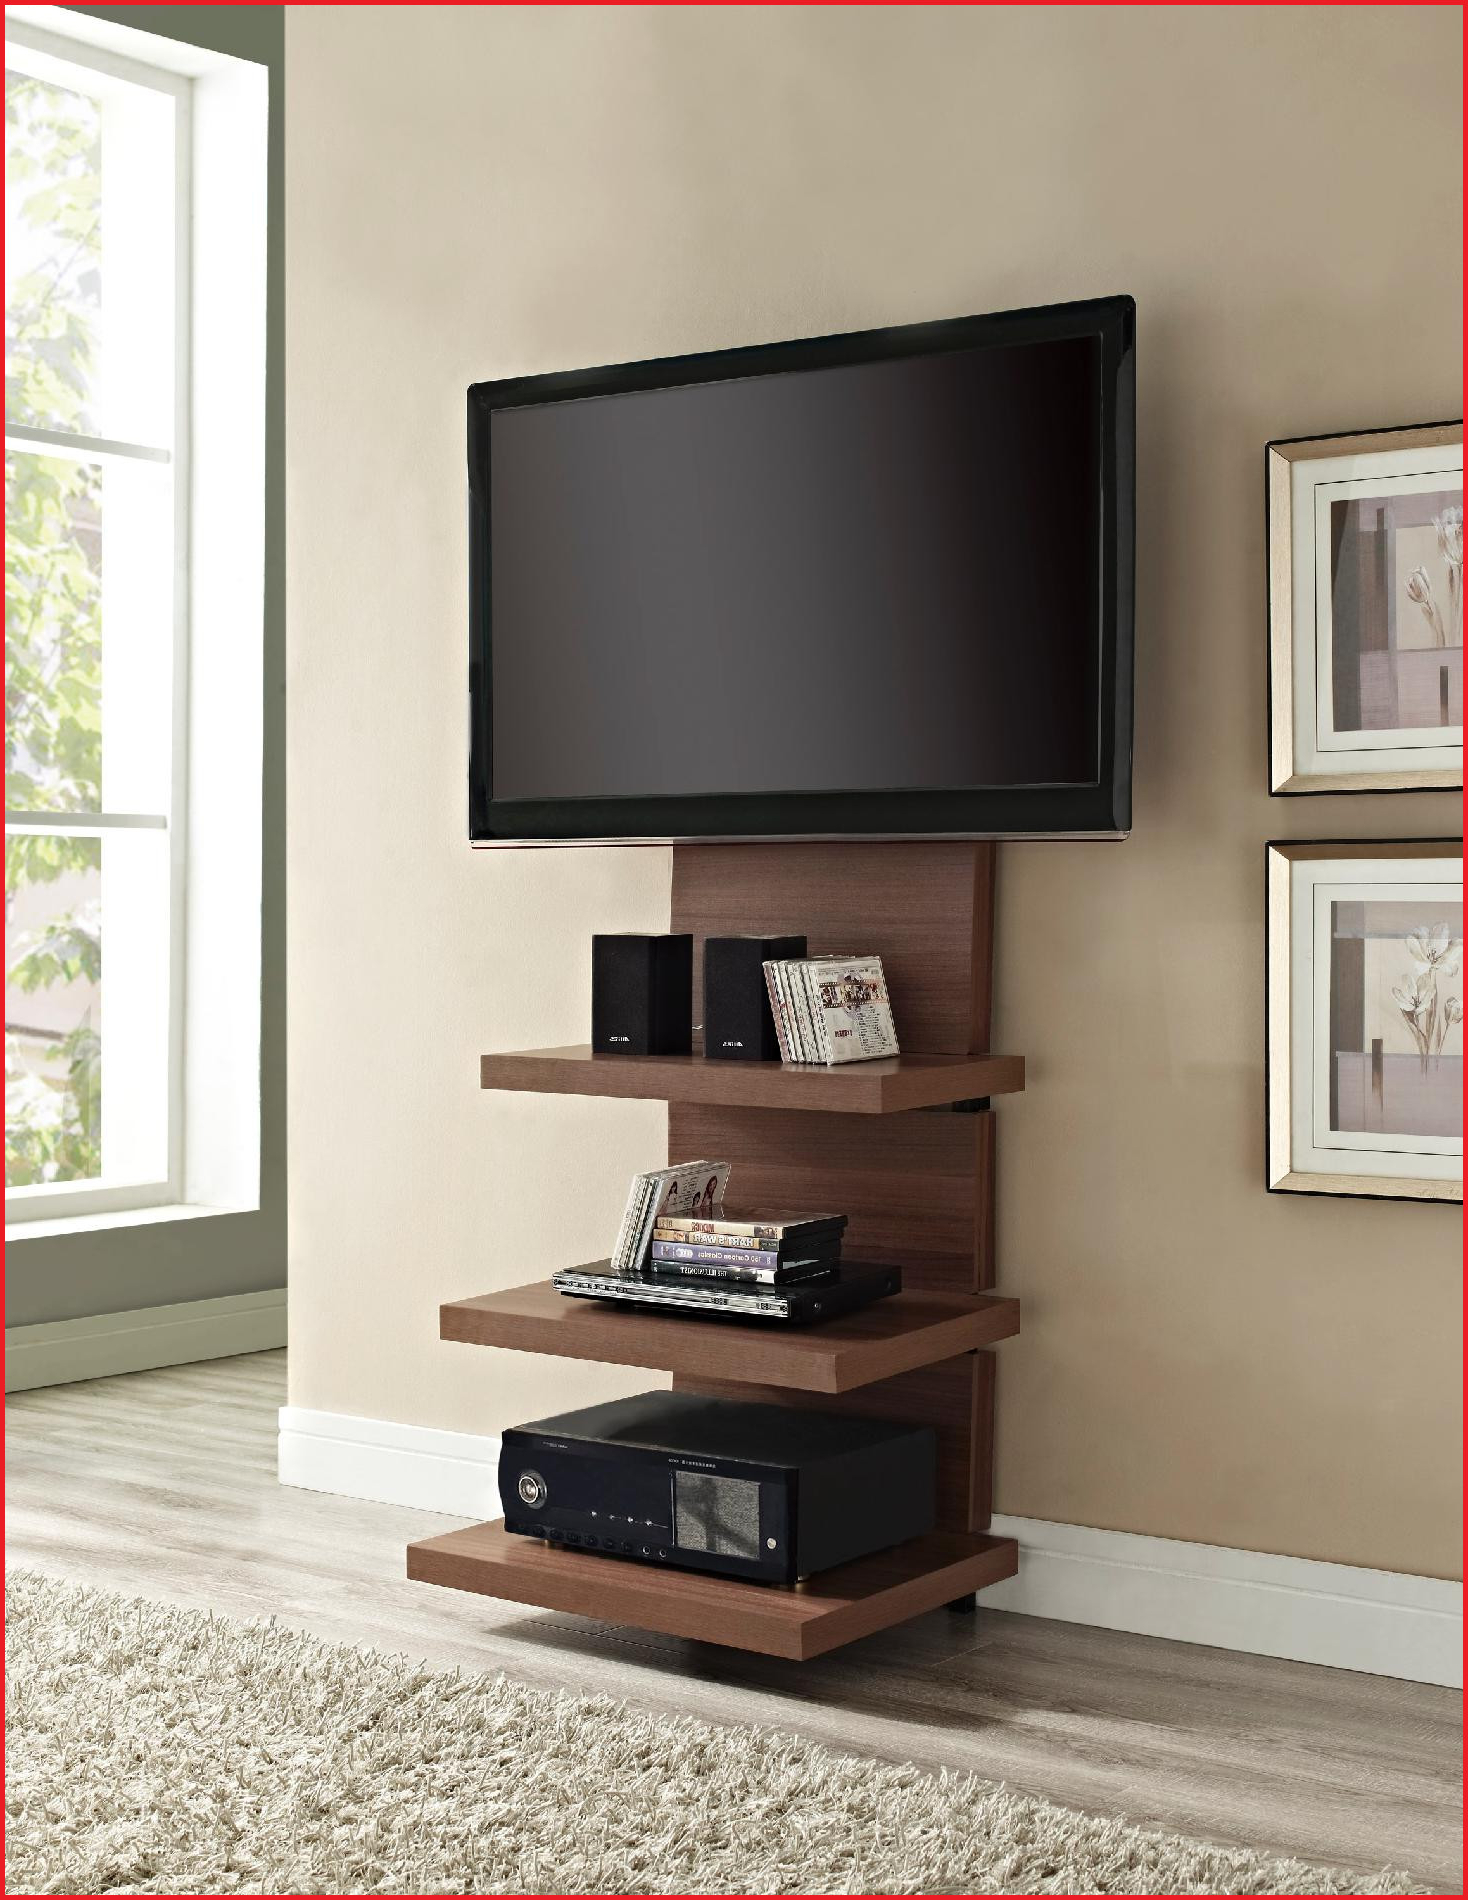 Tall Skinny Tv Stands Pertaining To Best And Newest Lovely Tall Thin Tv Stand Gallery Of Tv Stands Ideas 59635 – Tv (View 5 of 20)